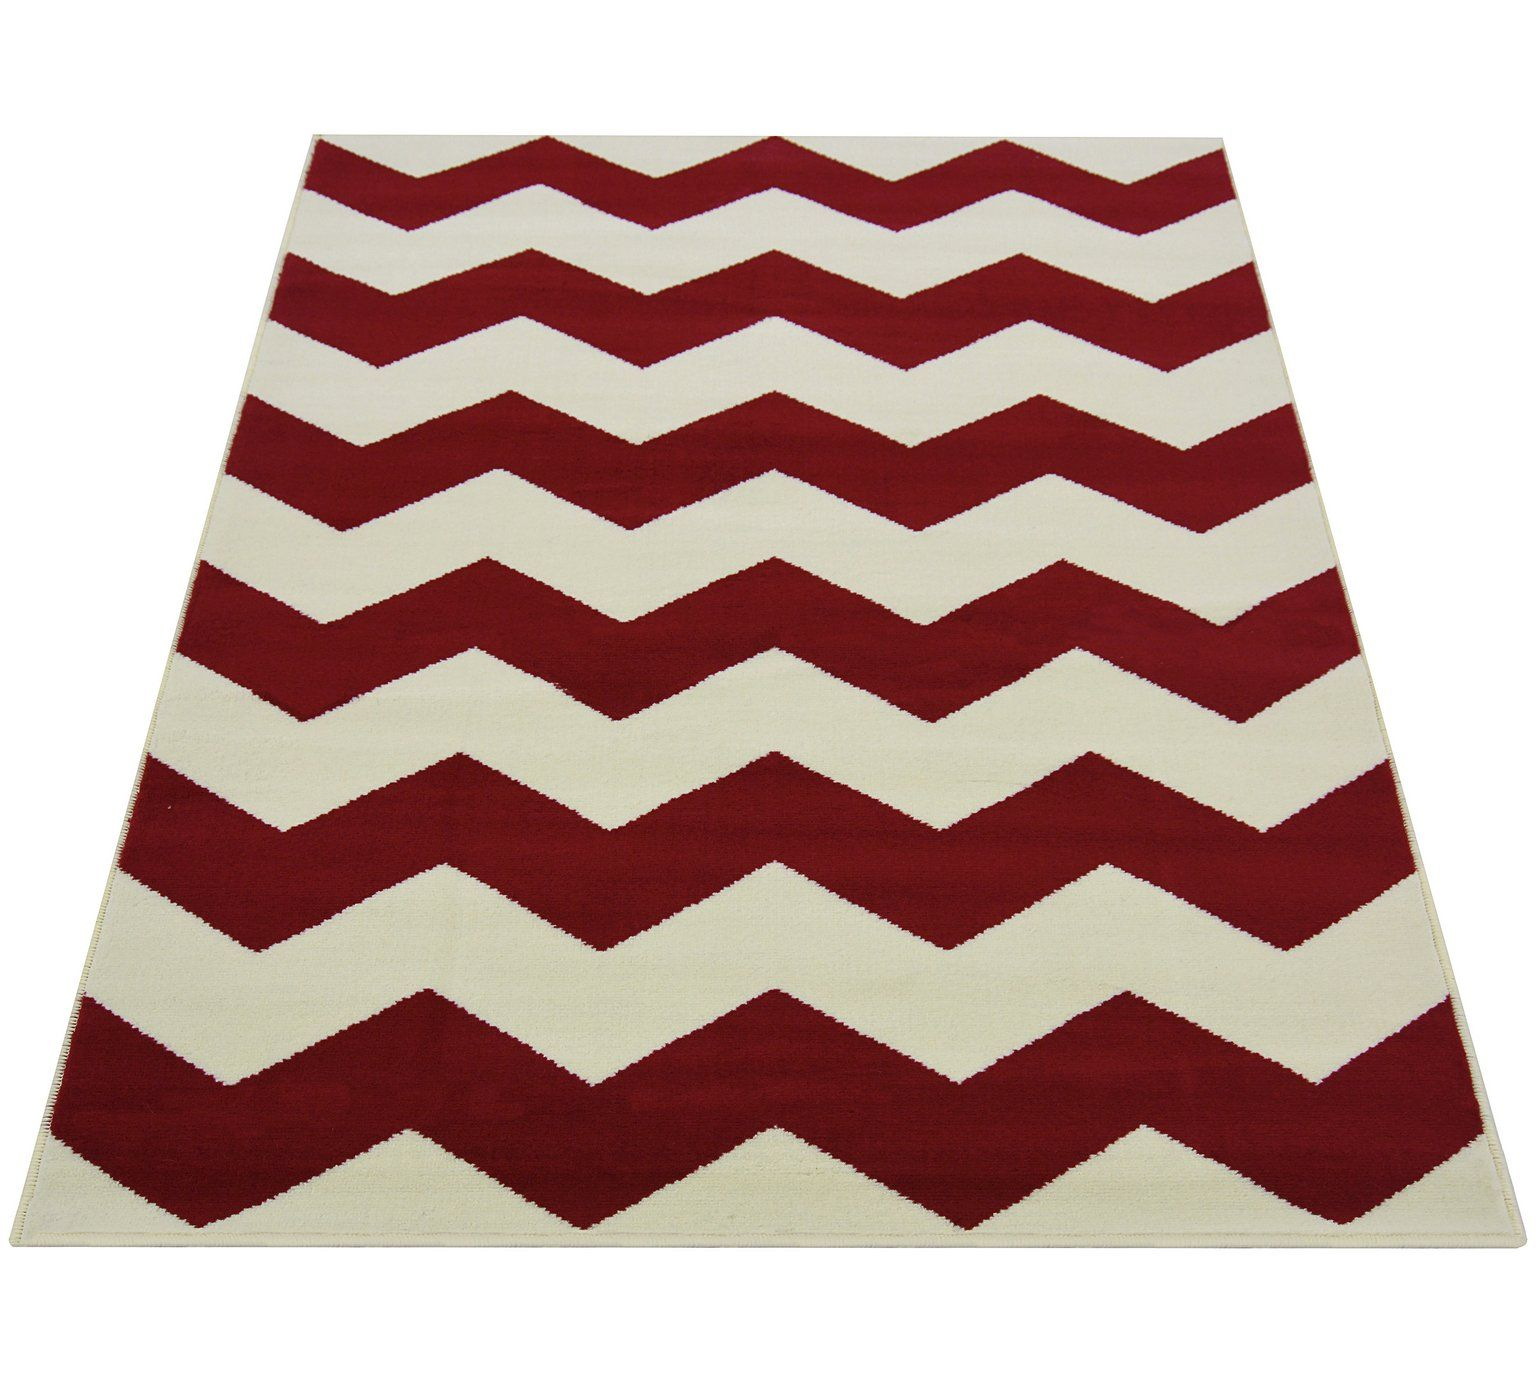 Chevron Rug 80x150cm Red At Argos Co Uk Visit